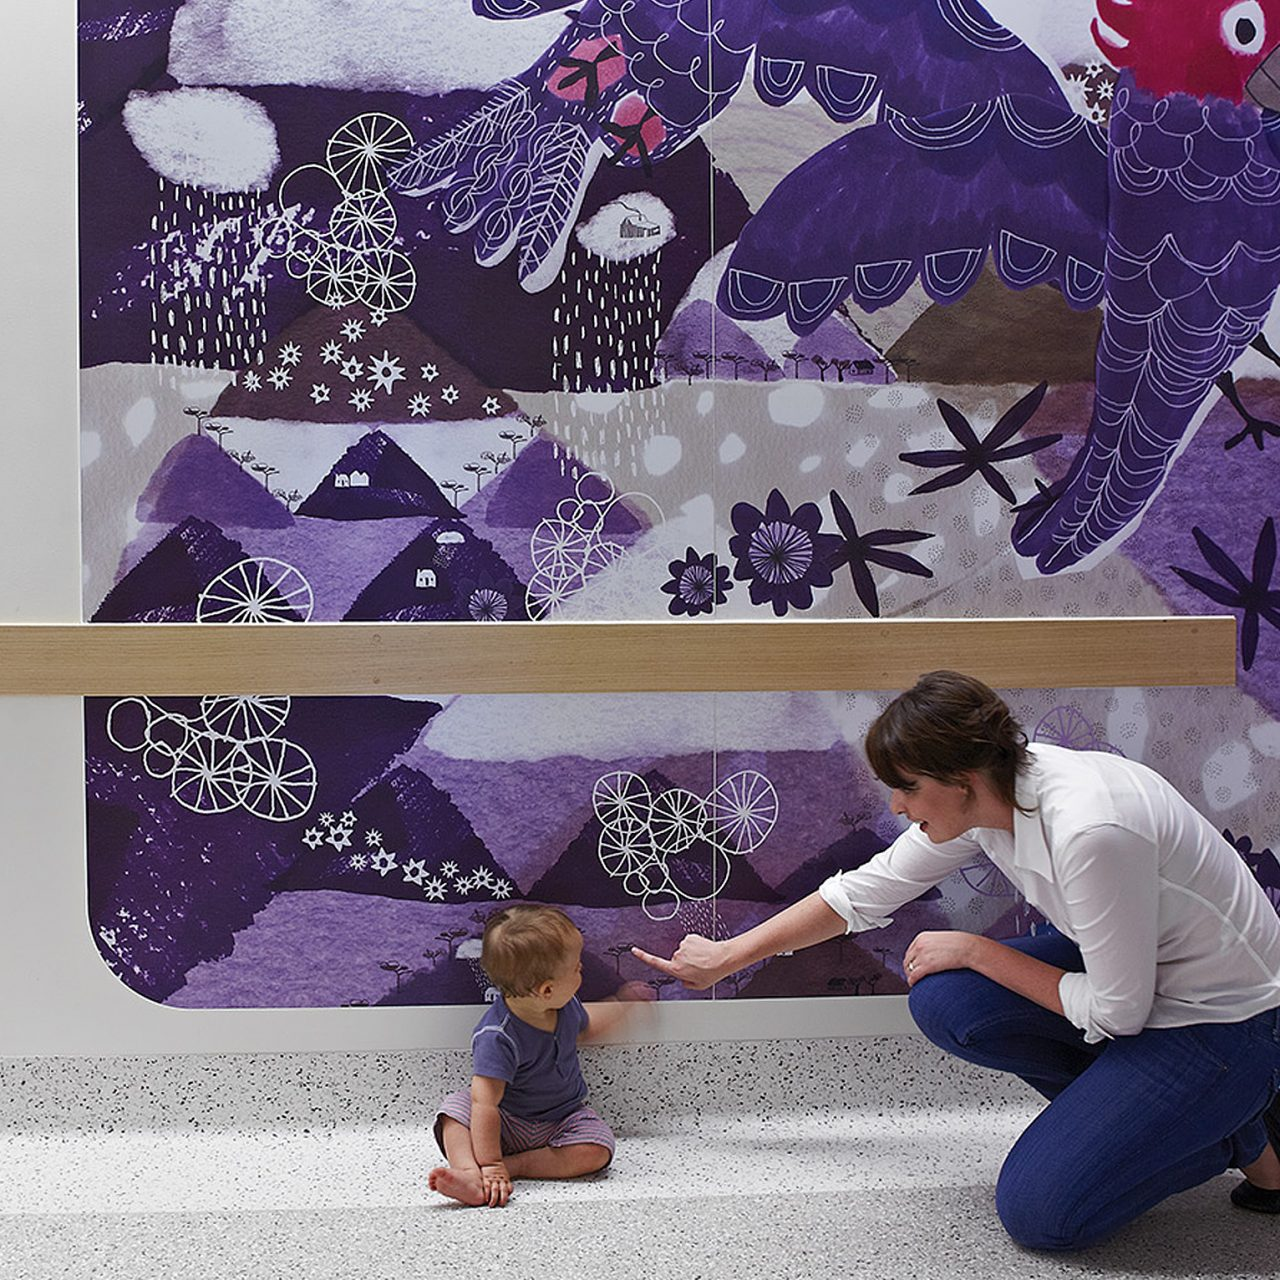 Supergraphics for Royal Children's Hospital